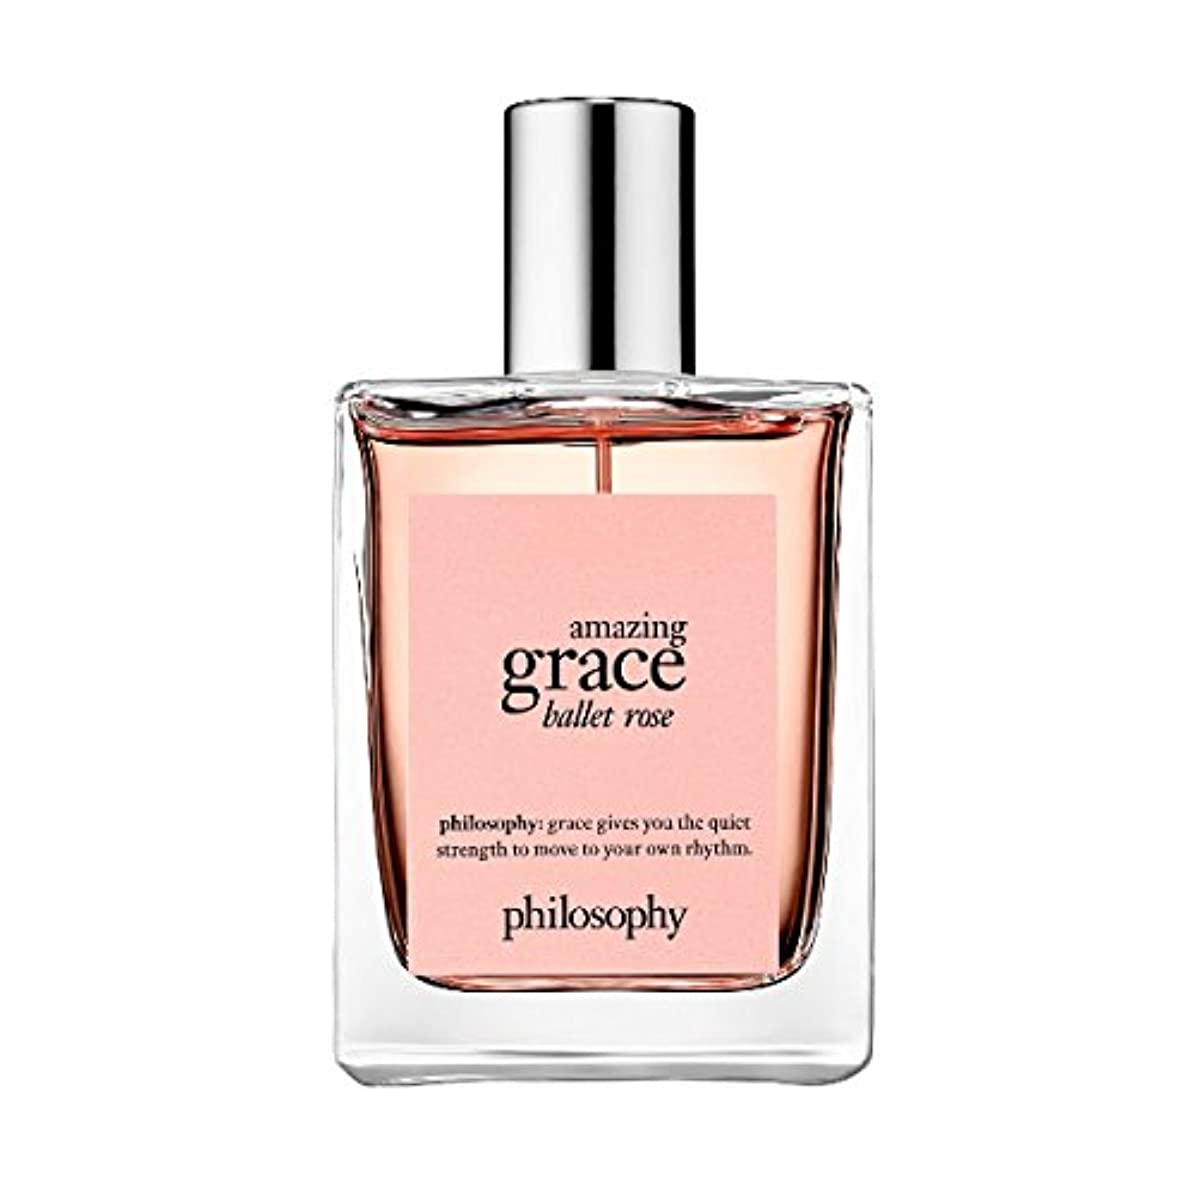 PHILOSOPHY, New!! Amazing Grace Ballet Rose Eau de Toilette 60 mL [海外直送品] [並行輸入品]